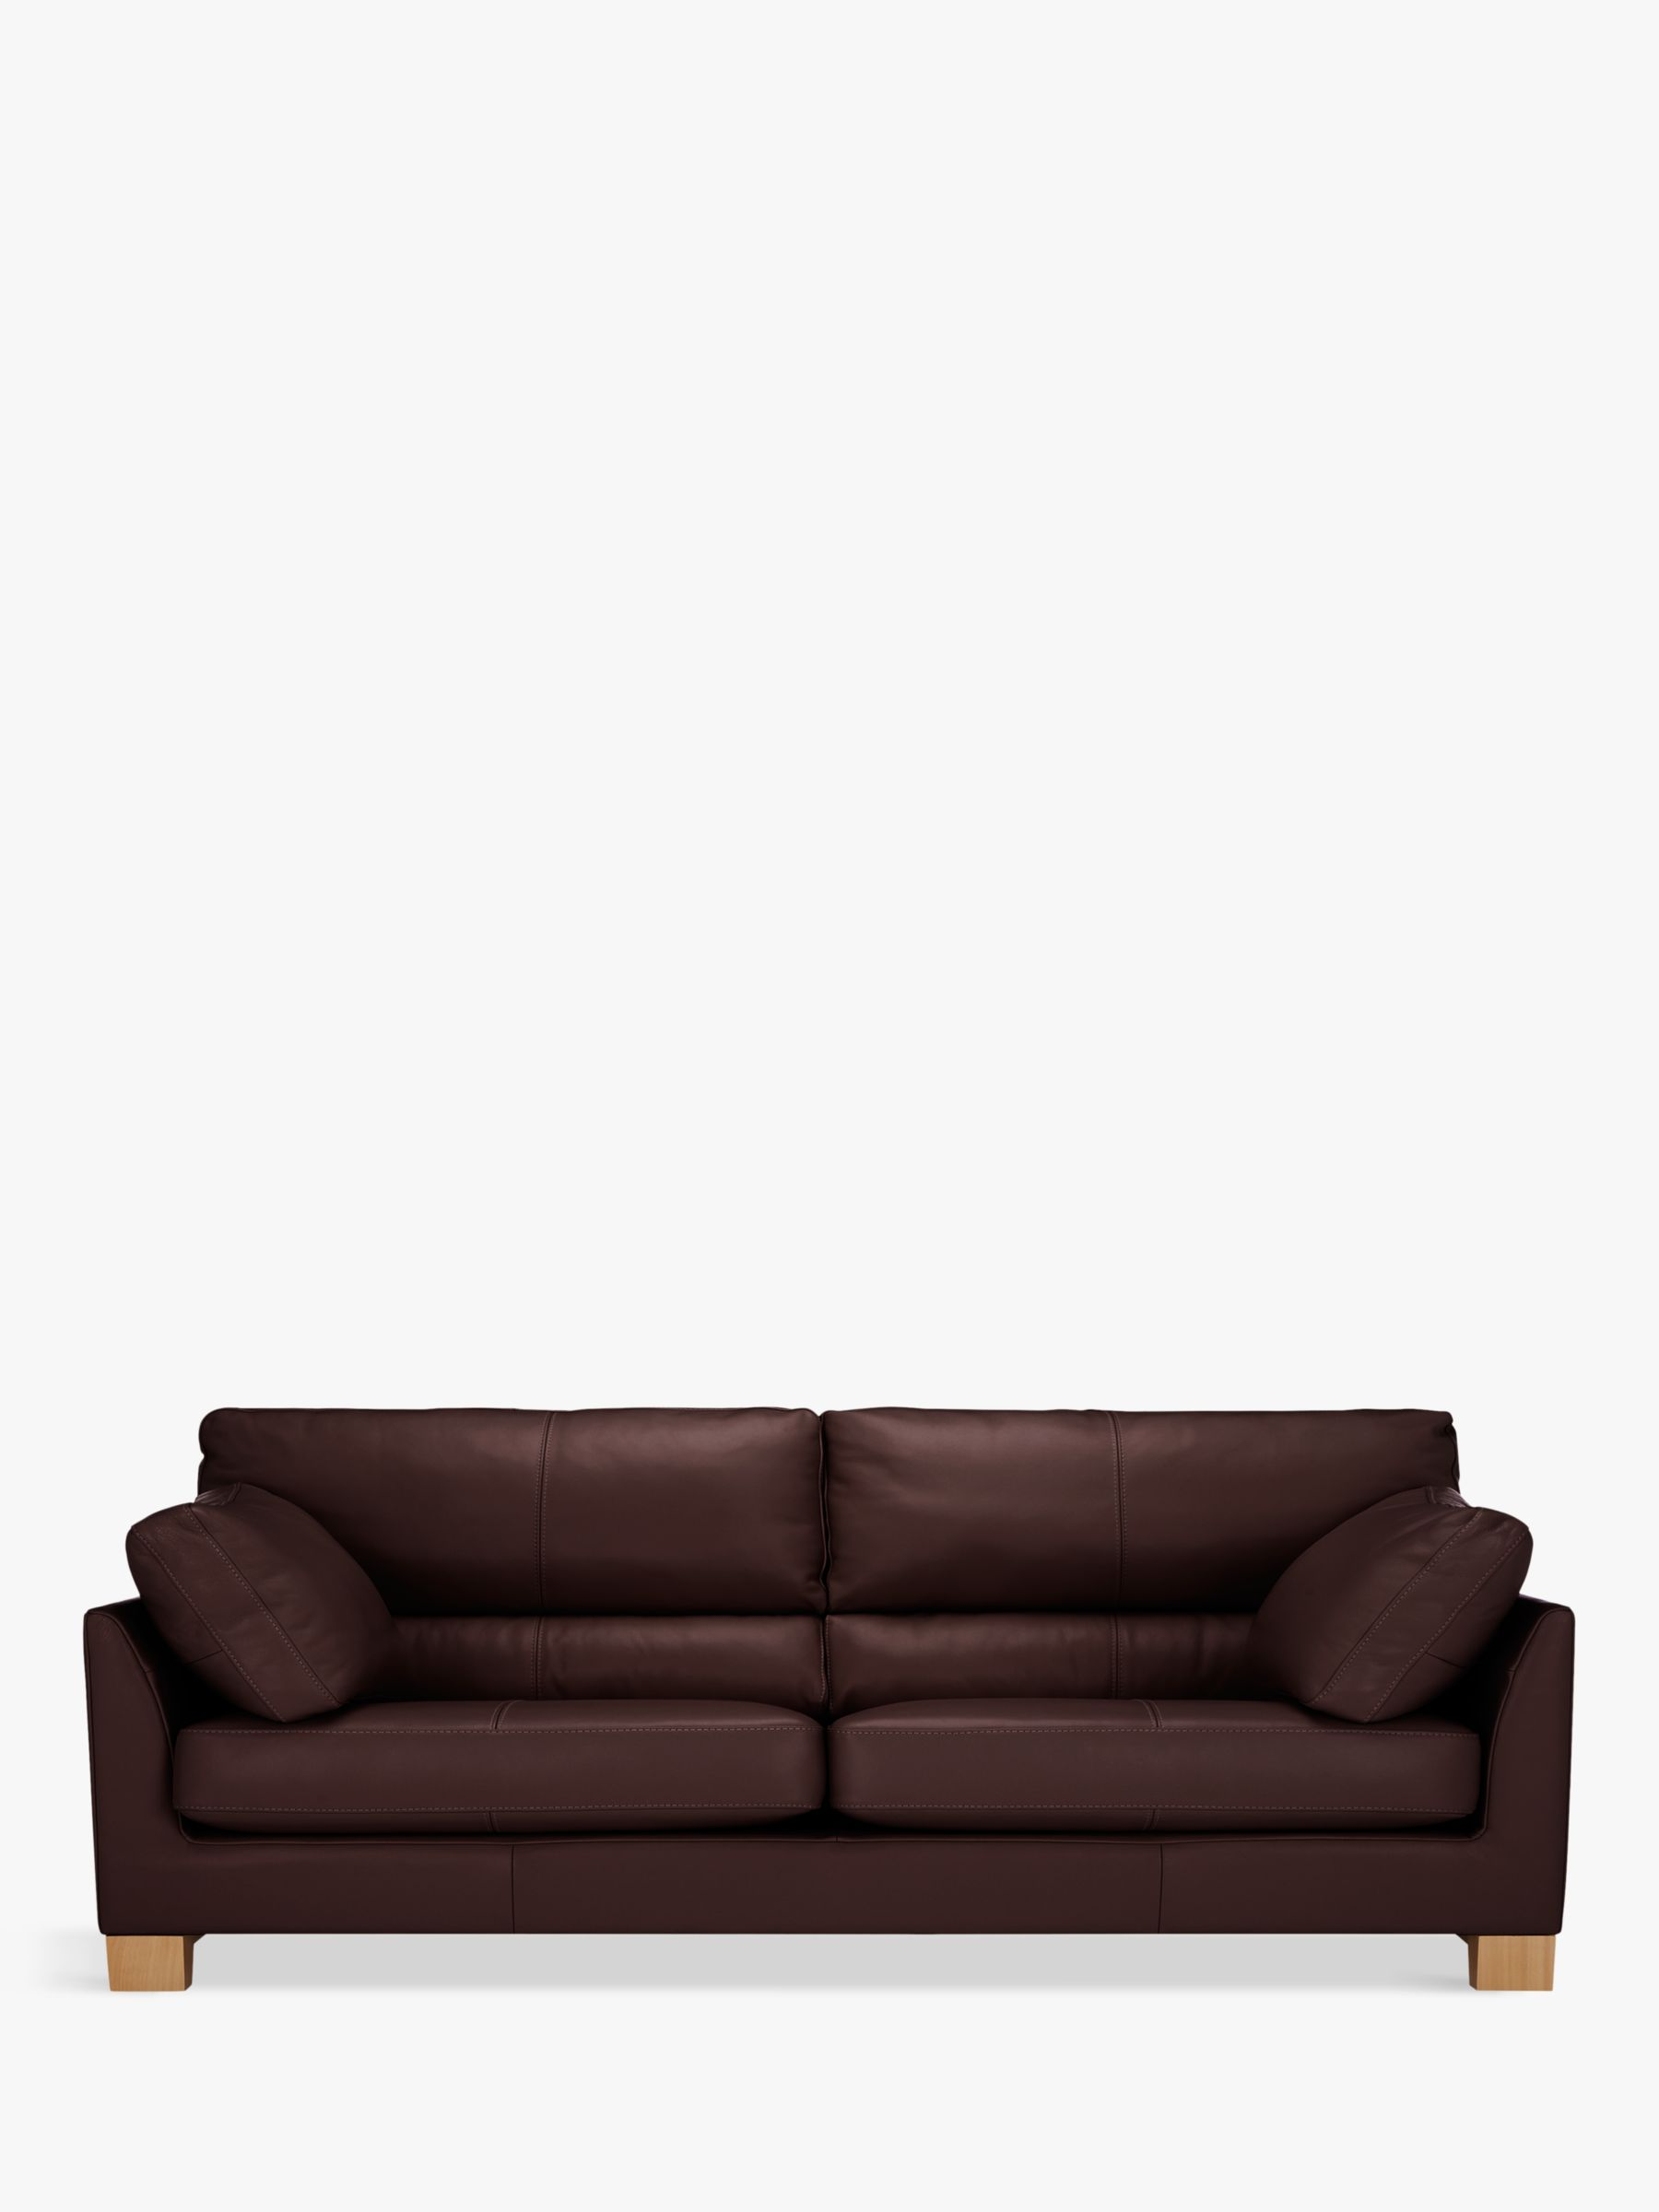 sacha large leather sofa bed madras chocolate is it worth reupholstering a uk john lewis